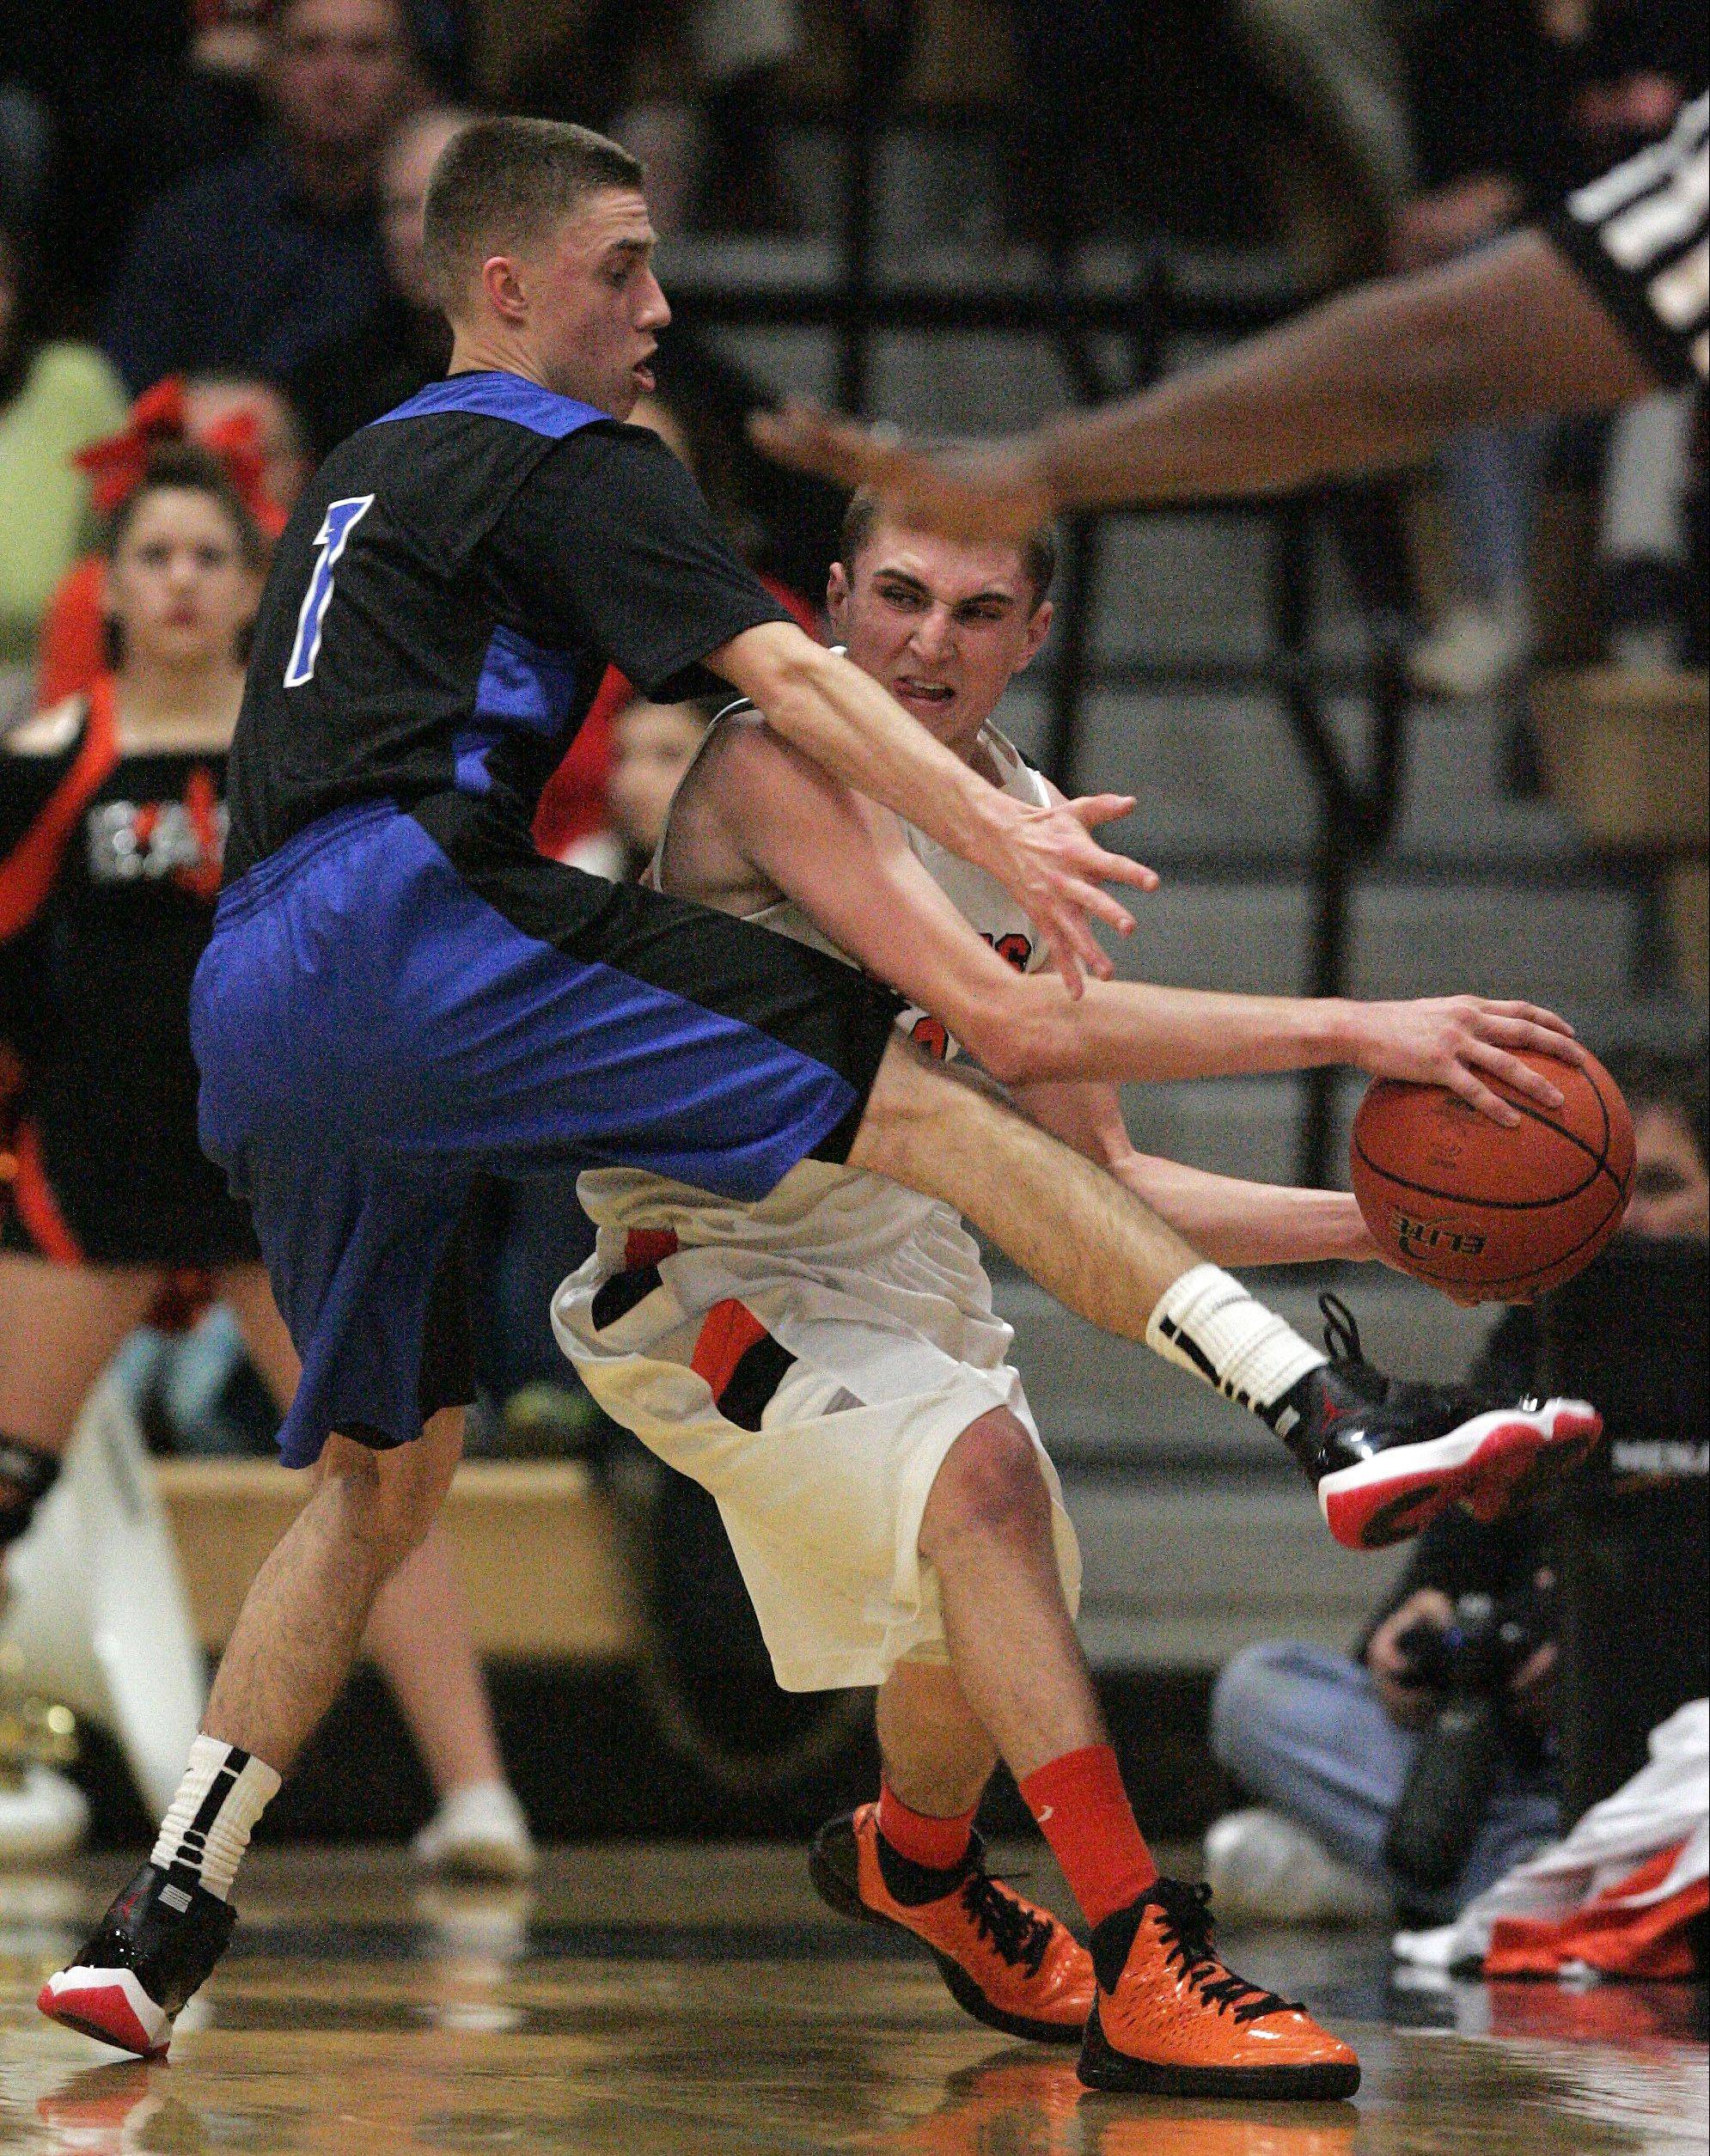 St. Charles North's Alec Goetz, 1, pressures St. Charles East's Dom Adduci, 2, during boys basketball Friday January 18, 2013.